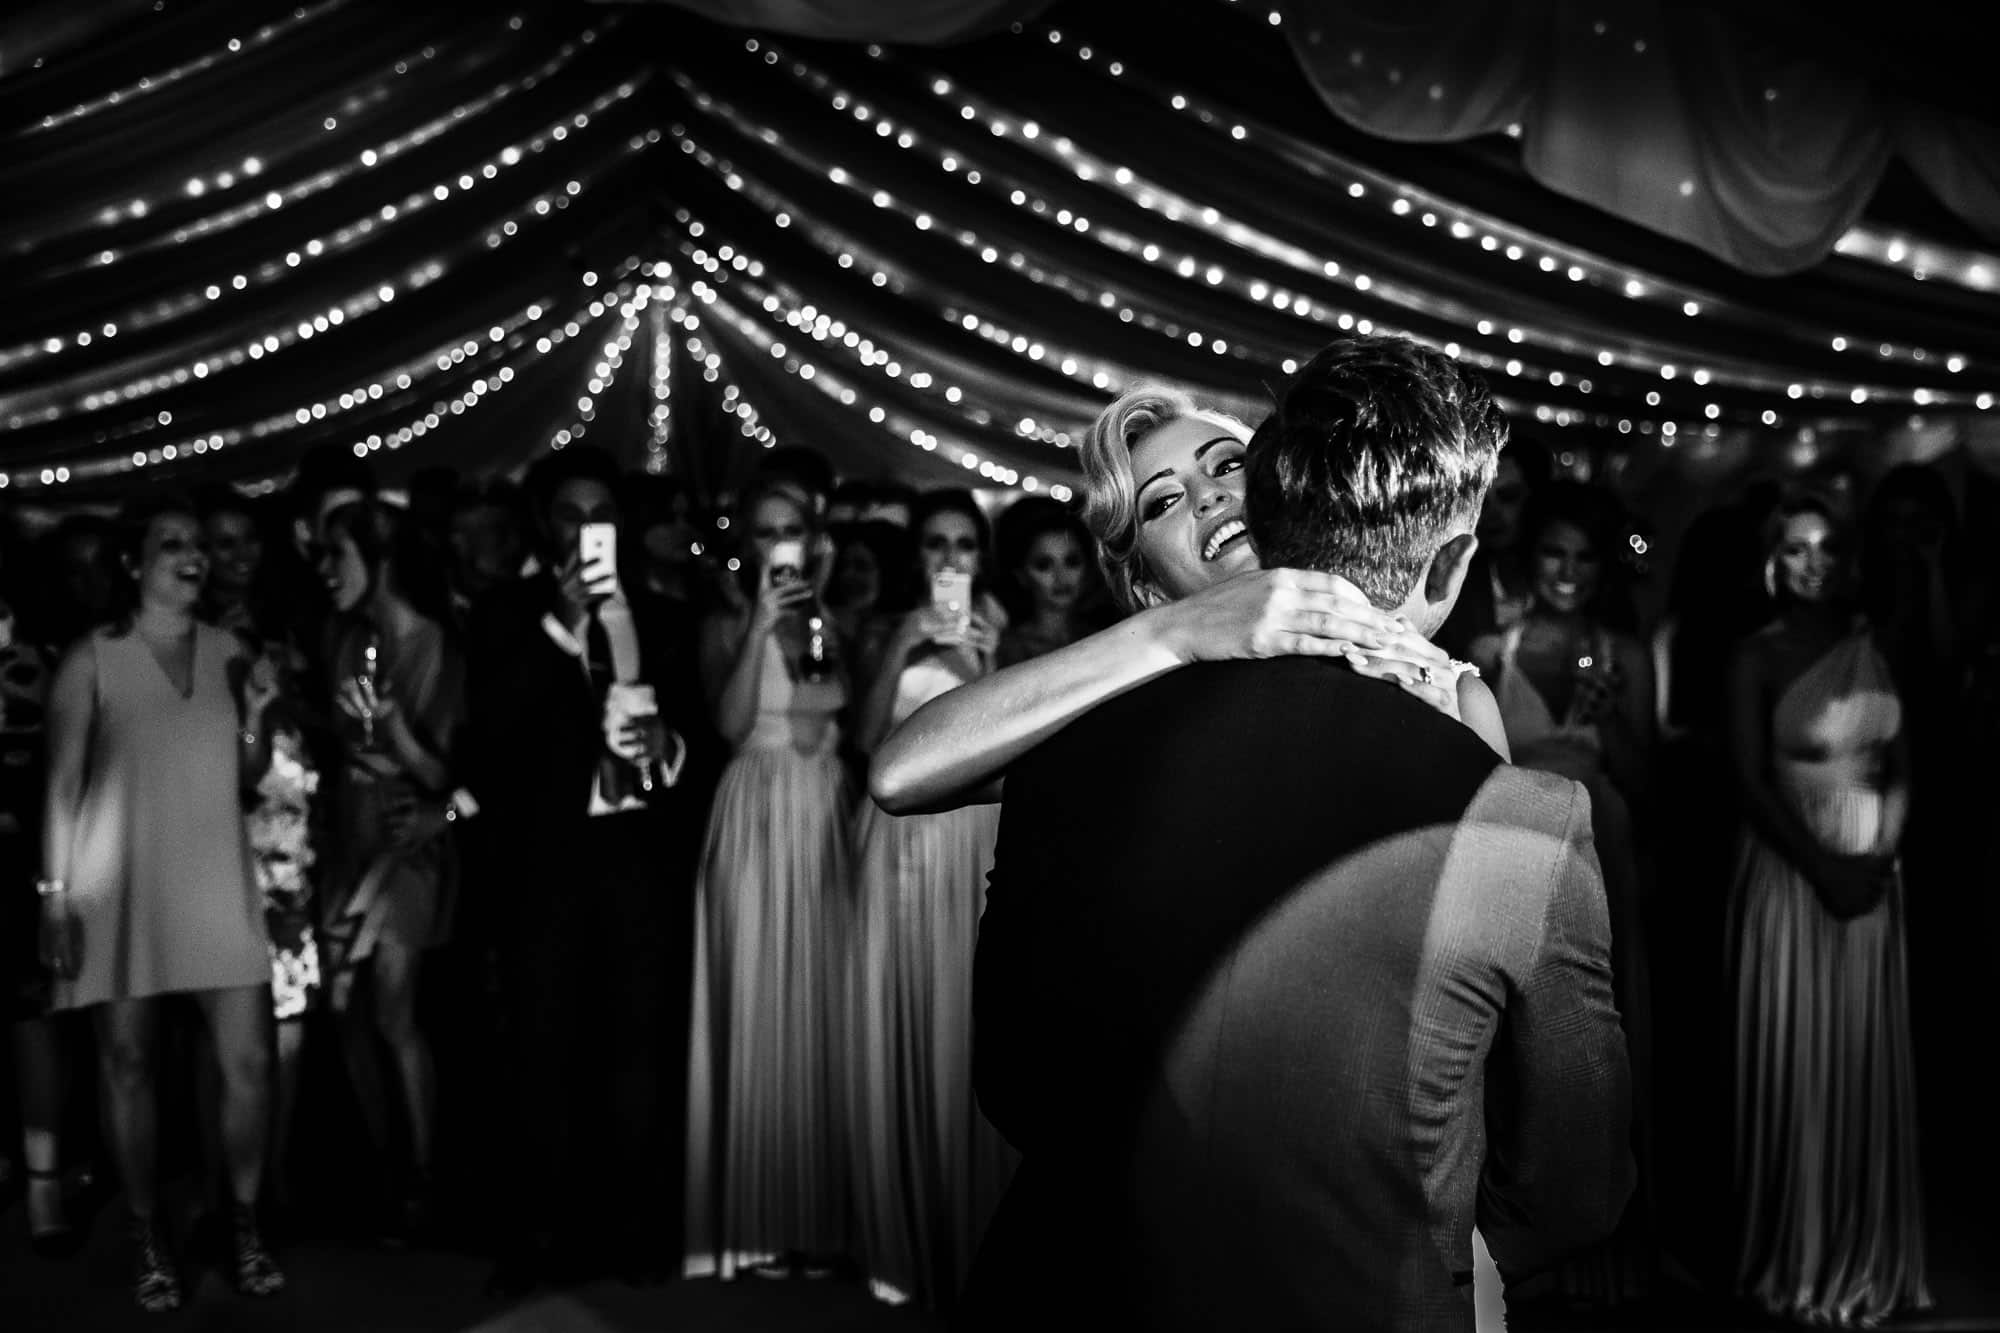 Surrey Wedding Photographer - First Dance - Black and White